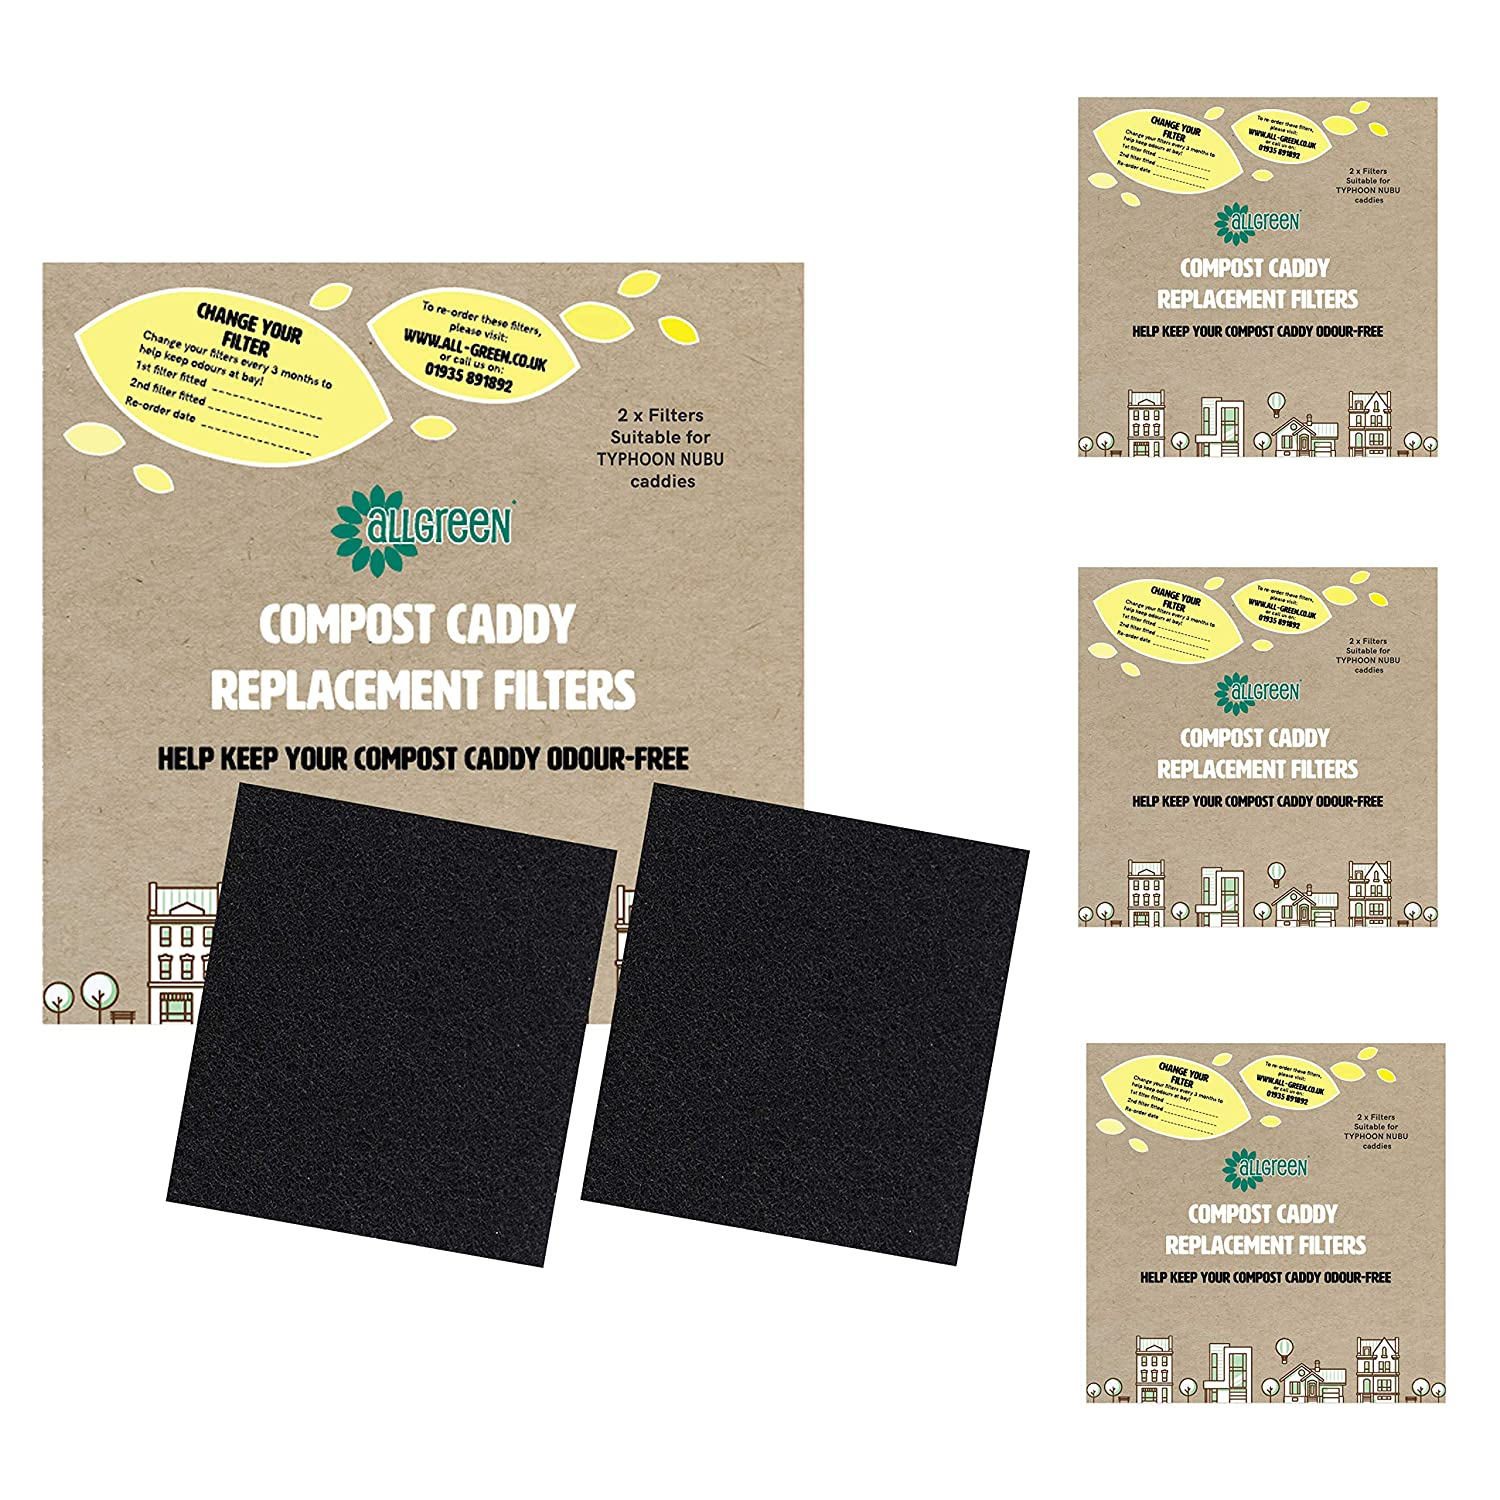 4X 2pk - Total 8 Filters Compost Caddy Spare Filters Suitable for The Typhoon Nubu Caddy